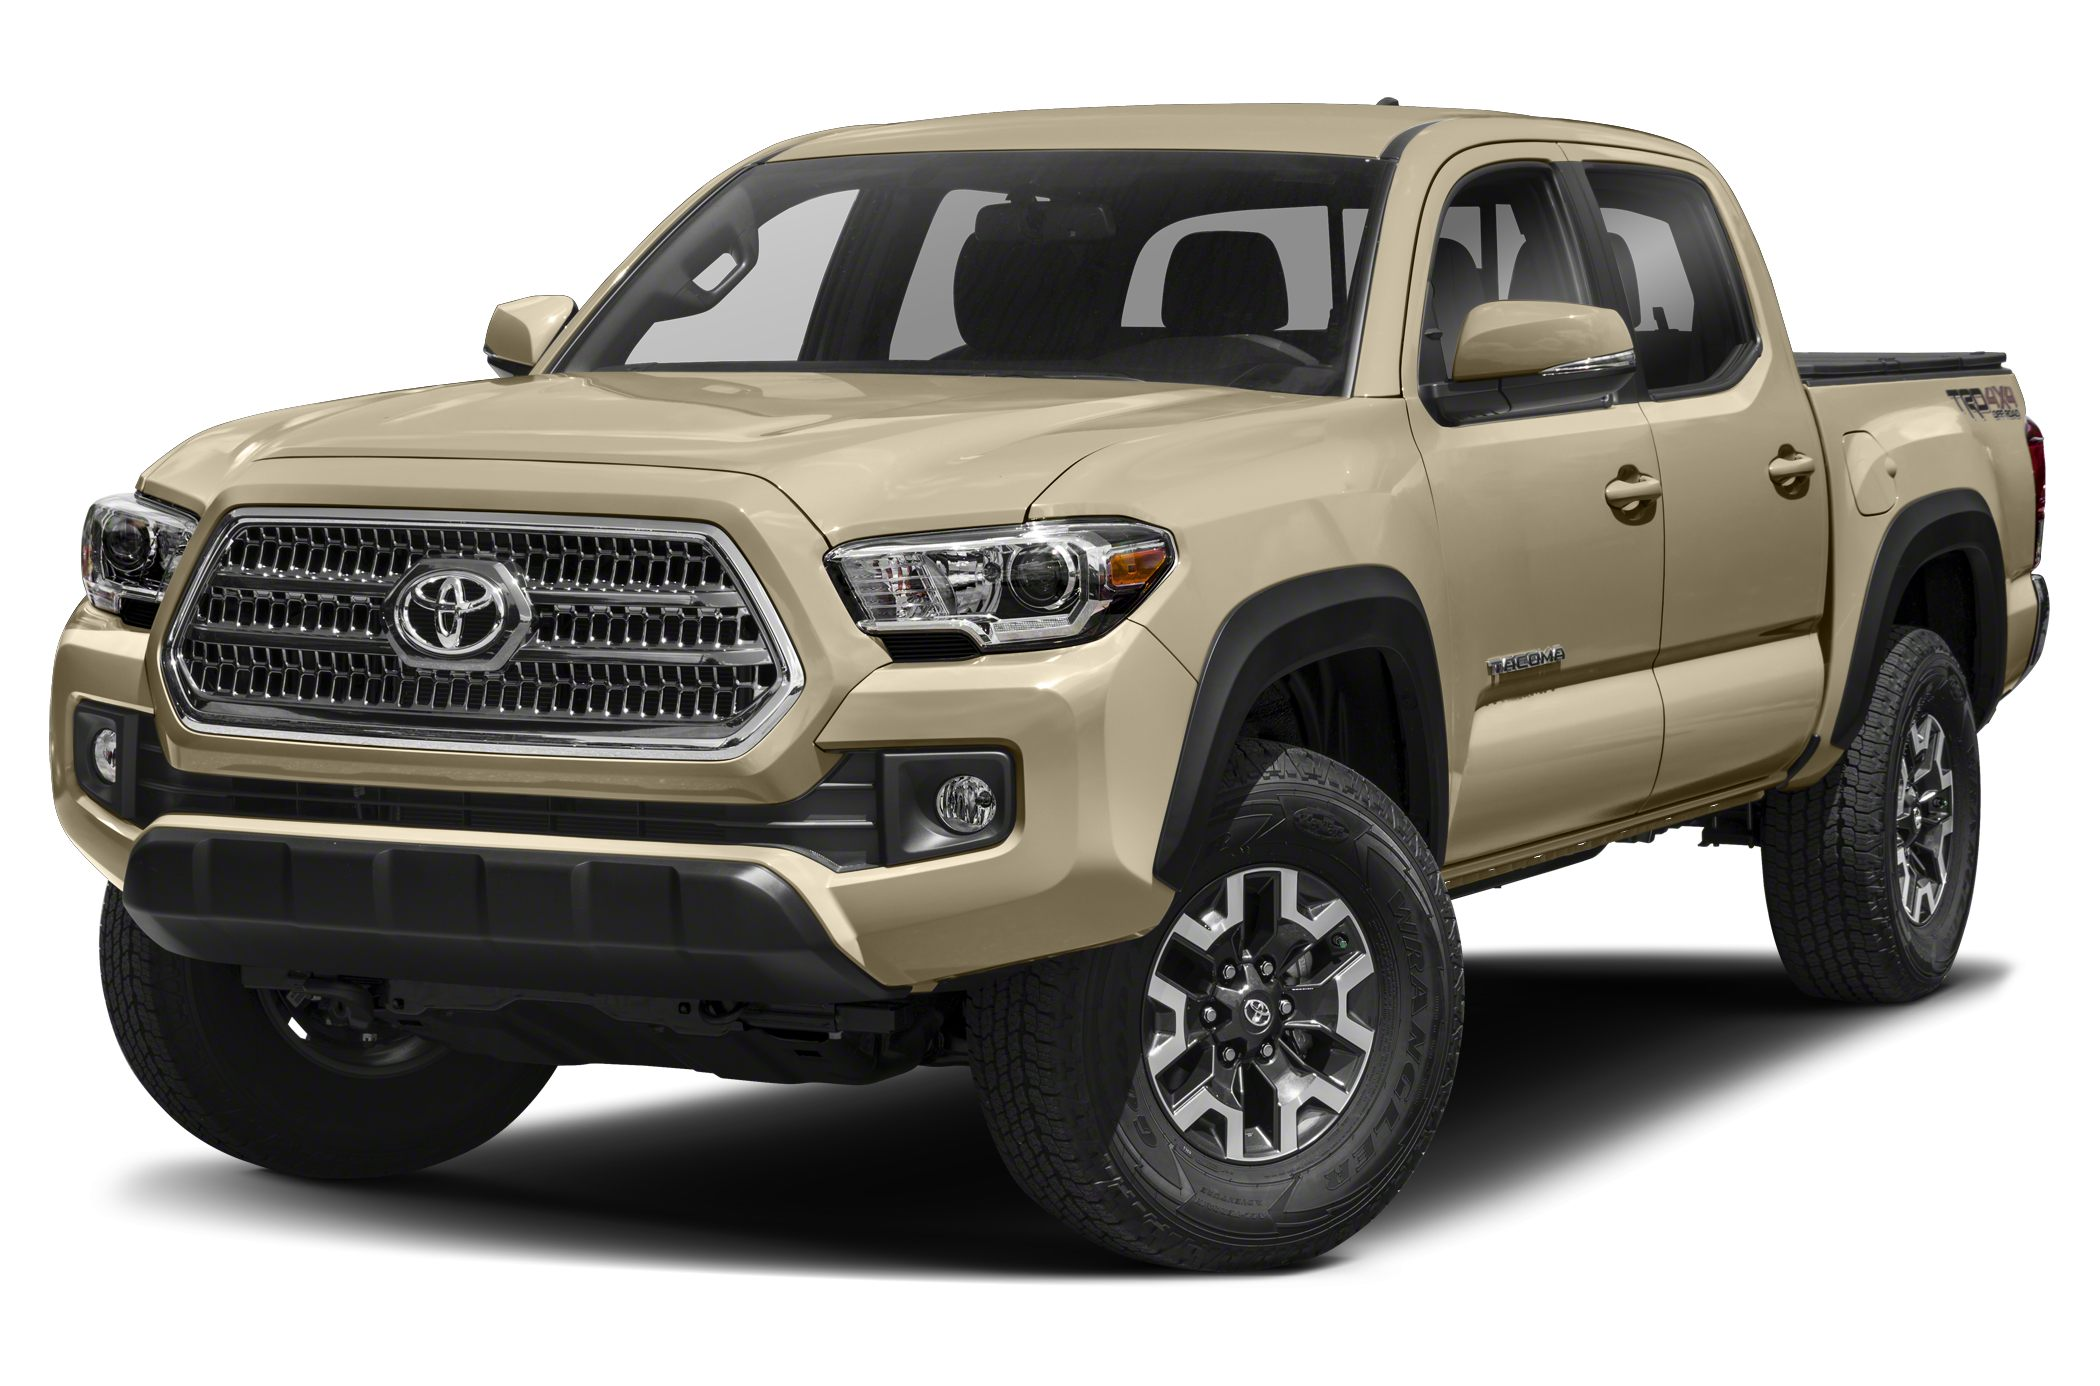 2017 Toyota Tacoma TRD Off Road V6 4x4 Double Cab 140.6 in. WB